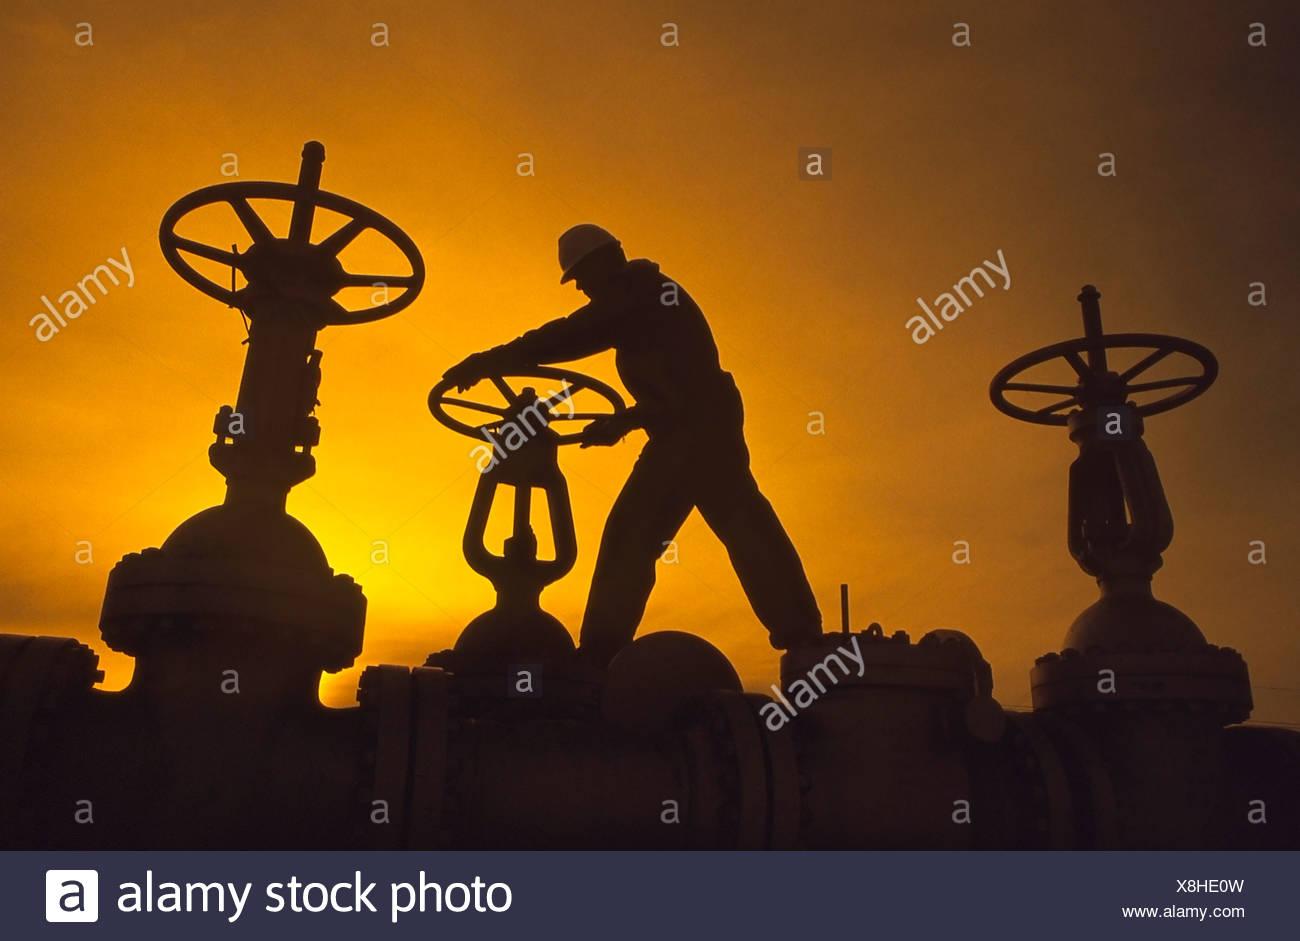 Oil industry worker turning valve on pipeline - Stock Image